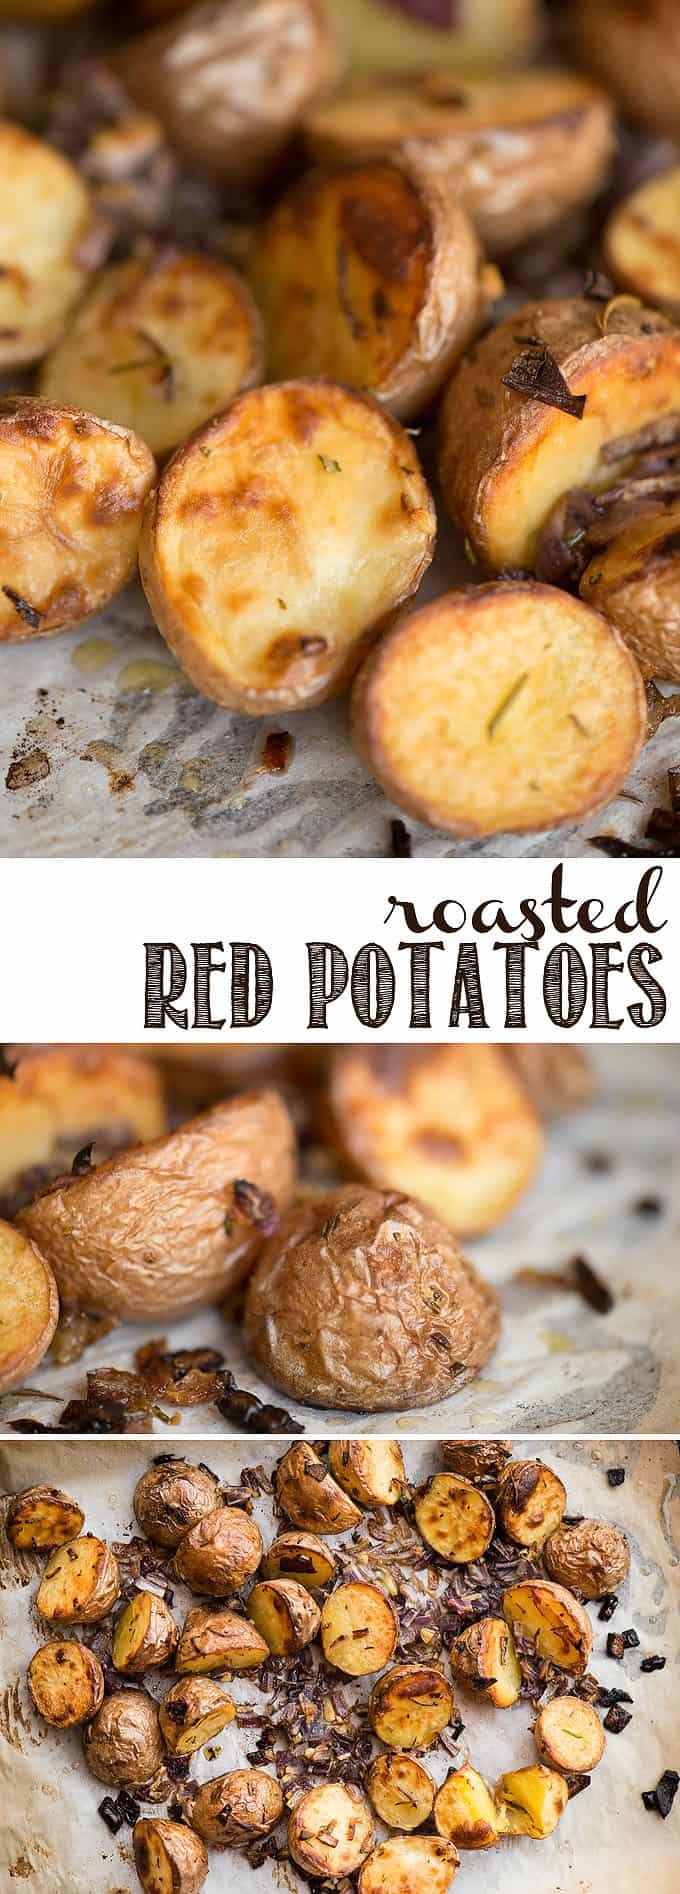 Roasted Red Potatoes are one of the tastiest and easiest vegetarian side dish recipes you can make! Baby red potatoes are halved and roasted in the oven with olive oil, red onion, fresh rosemary, garlic and salt. They are creamy on the inside and crispy on the outside. You won't find a better recipe! #roastedredpotatoes #redpotatoes #rosemary #roasted #sidedish #potatoes #oven #easy #rosemary #garlic #healthy #crispy